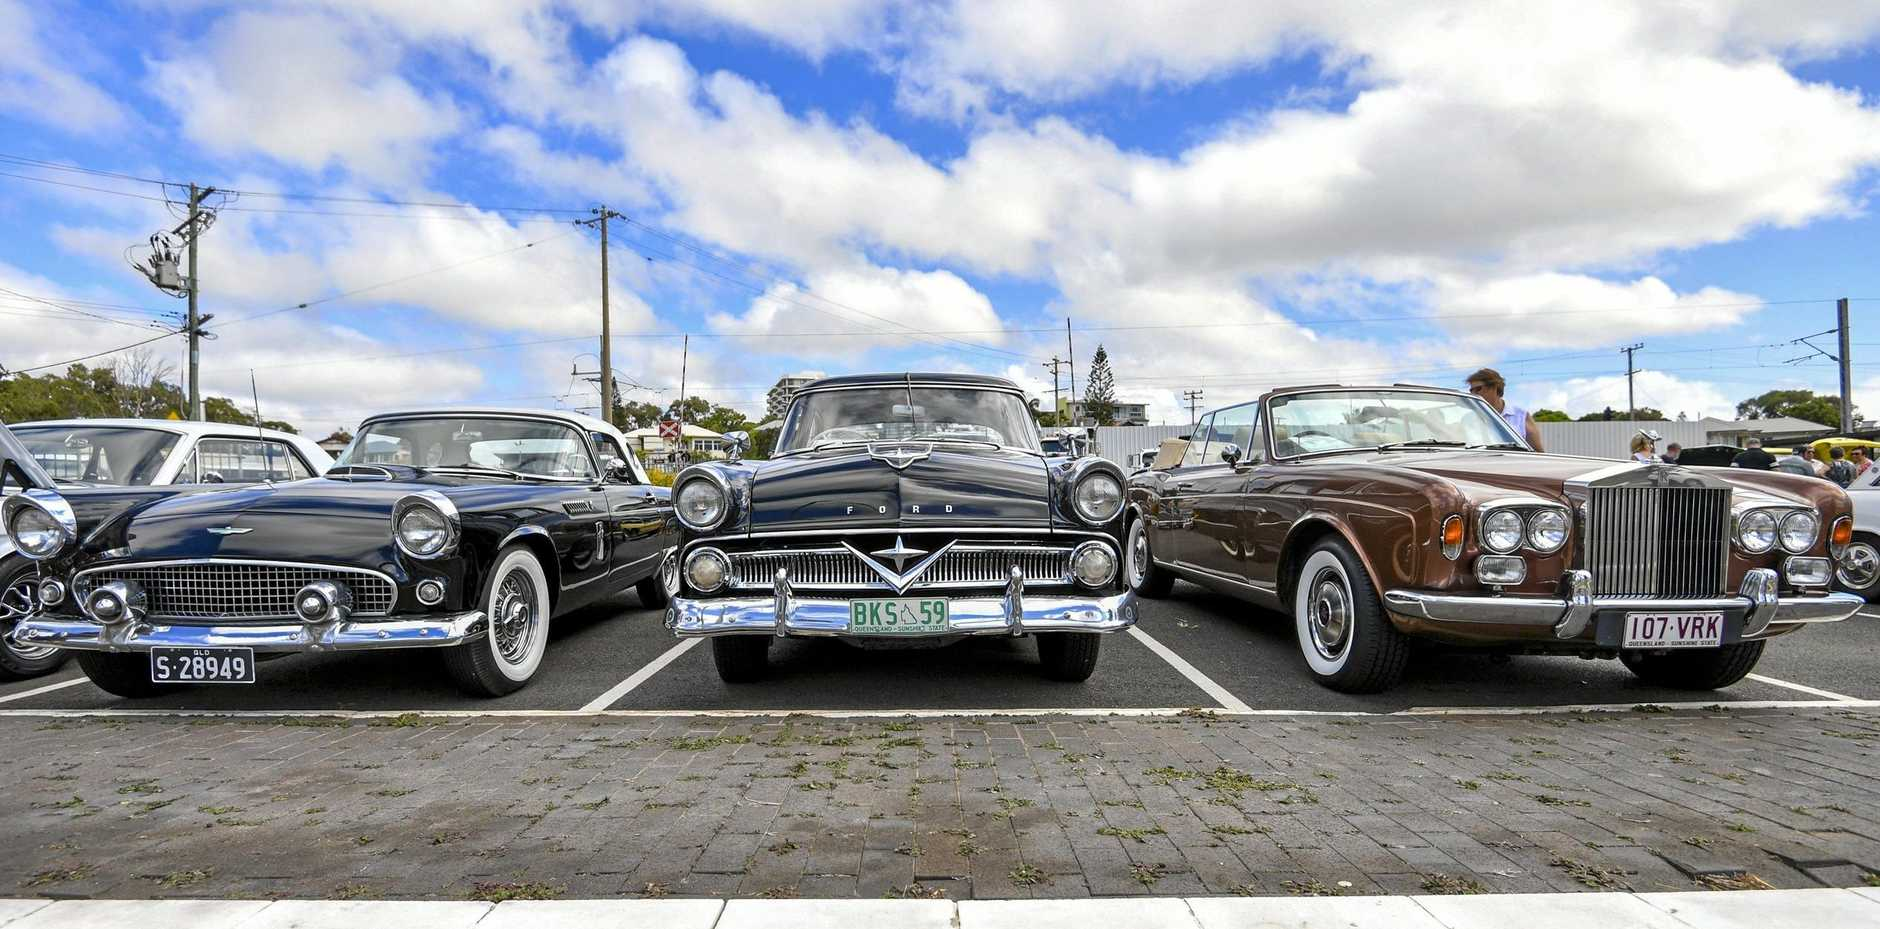 The classic cars on show at the Annual Easter Display.